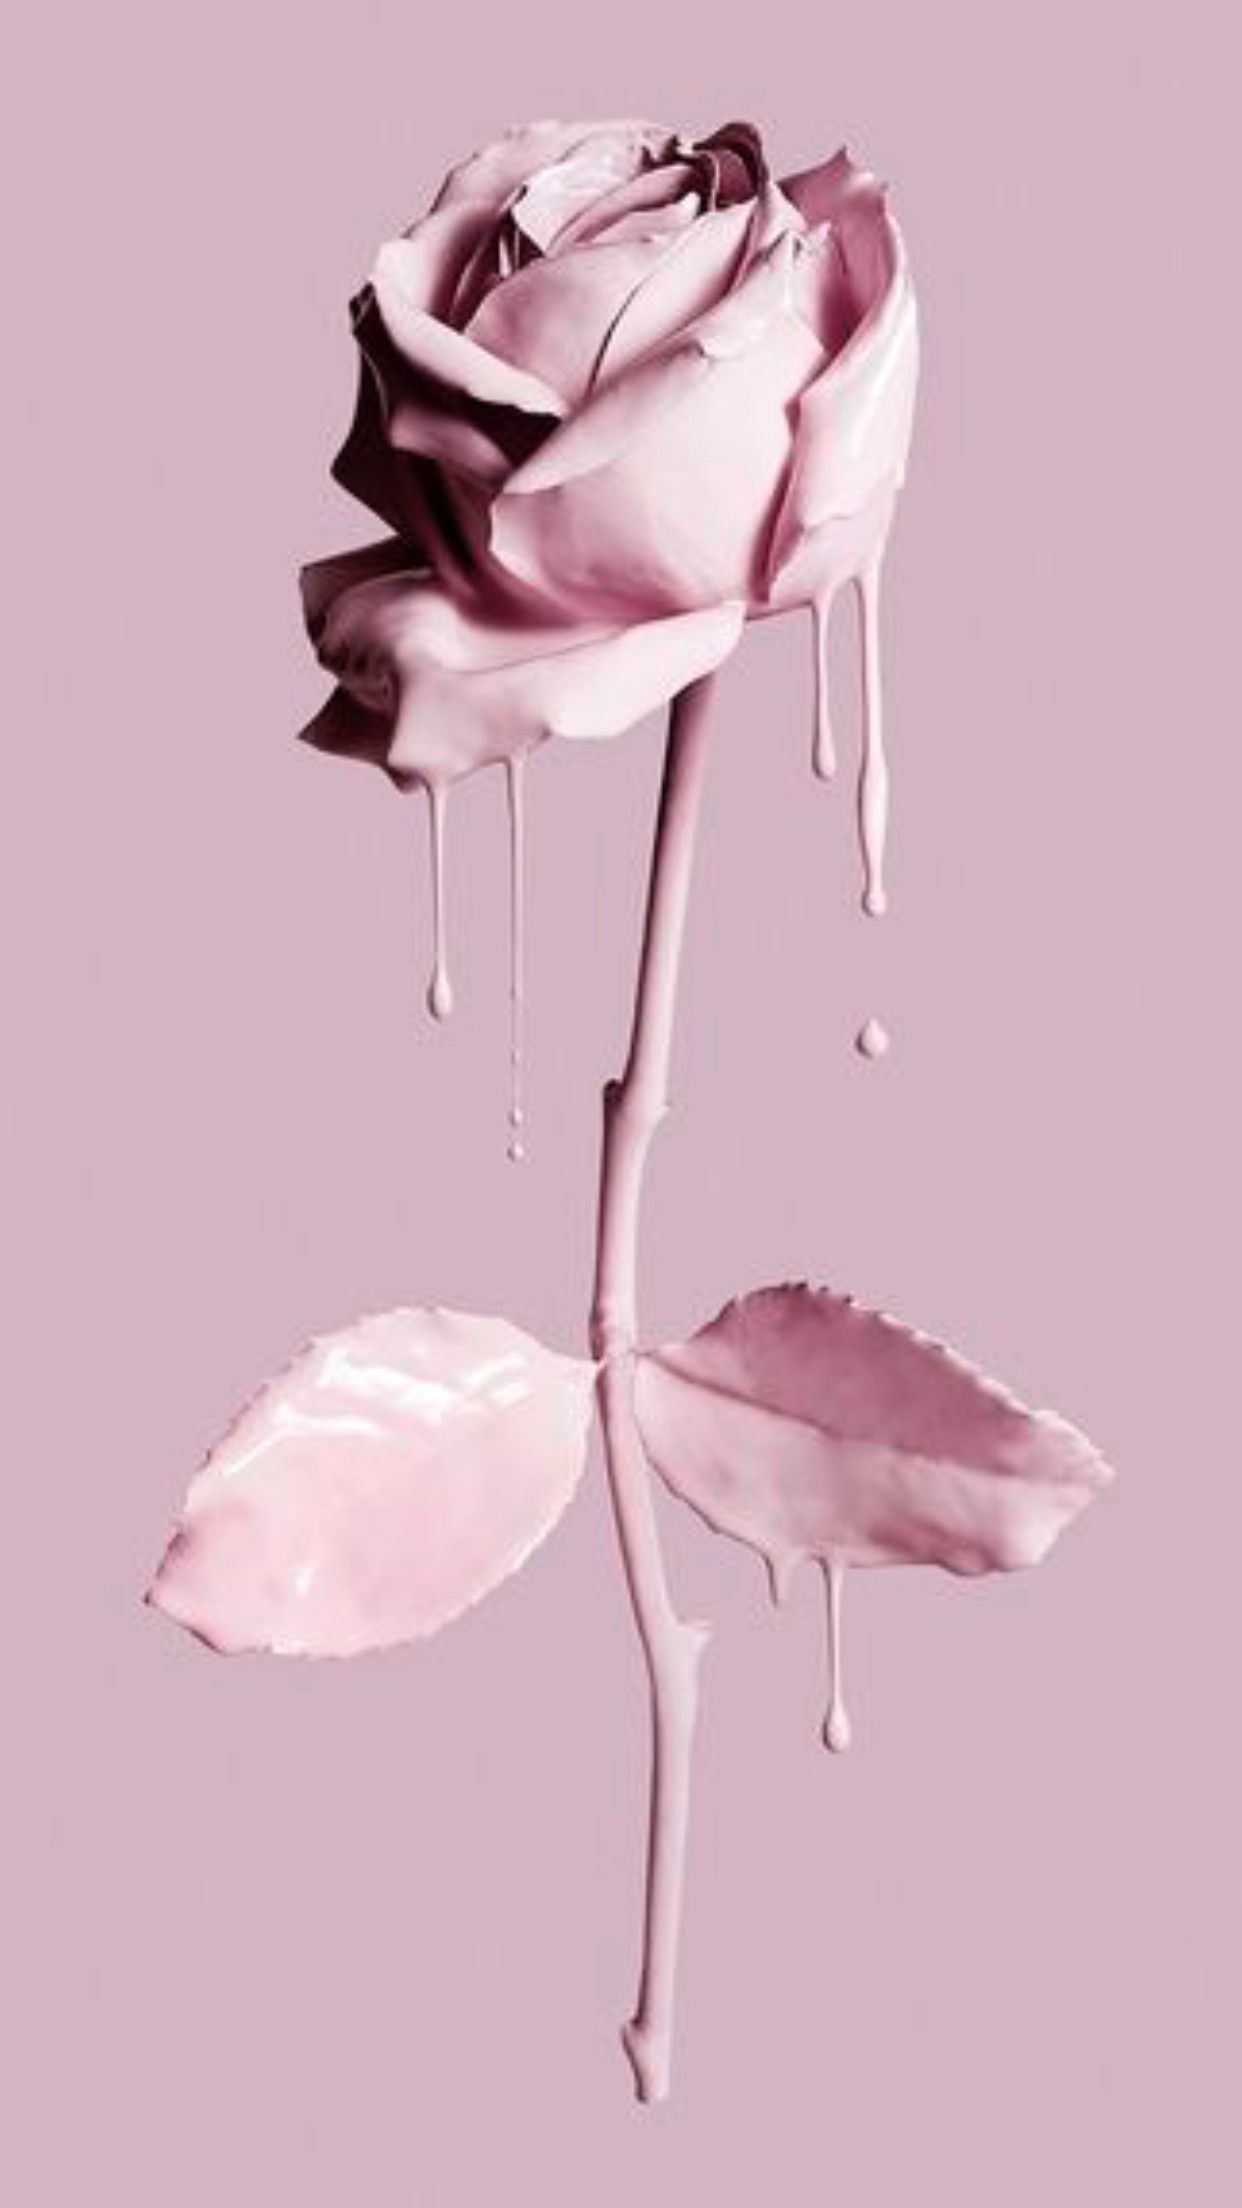 64 Roses Screensaver Wallpapers On Wallpaperplay Pastel Pink